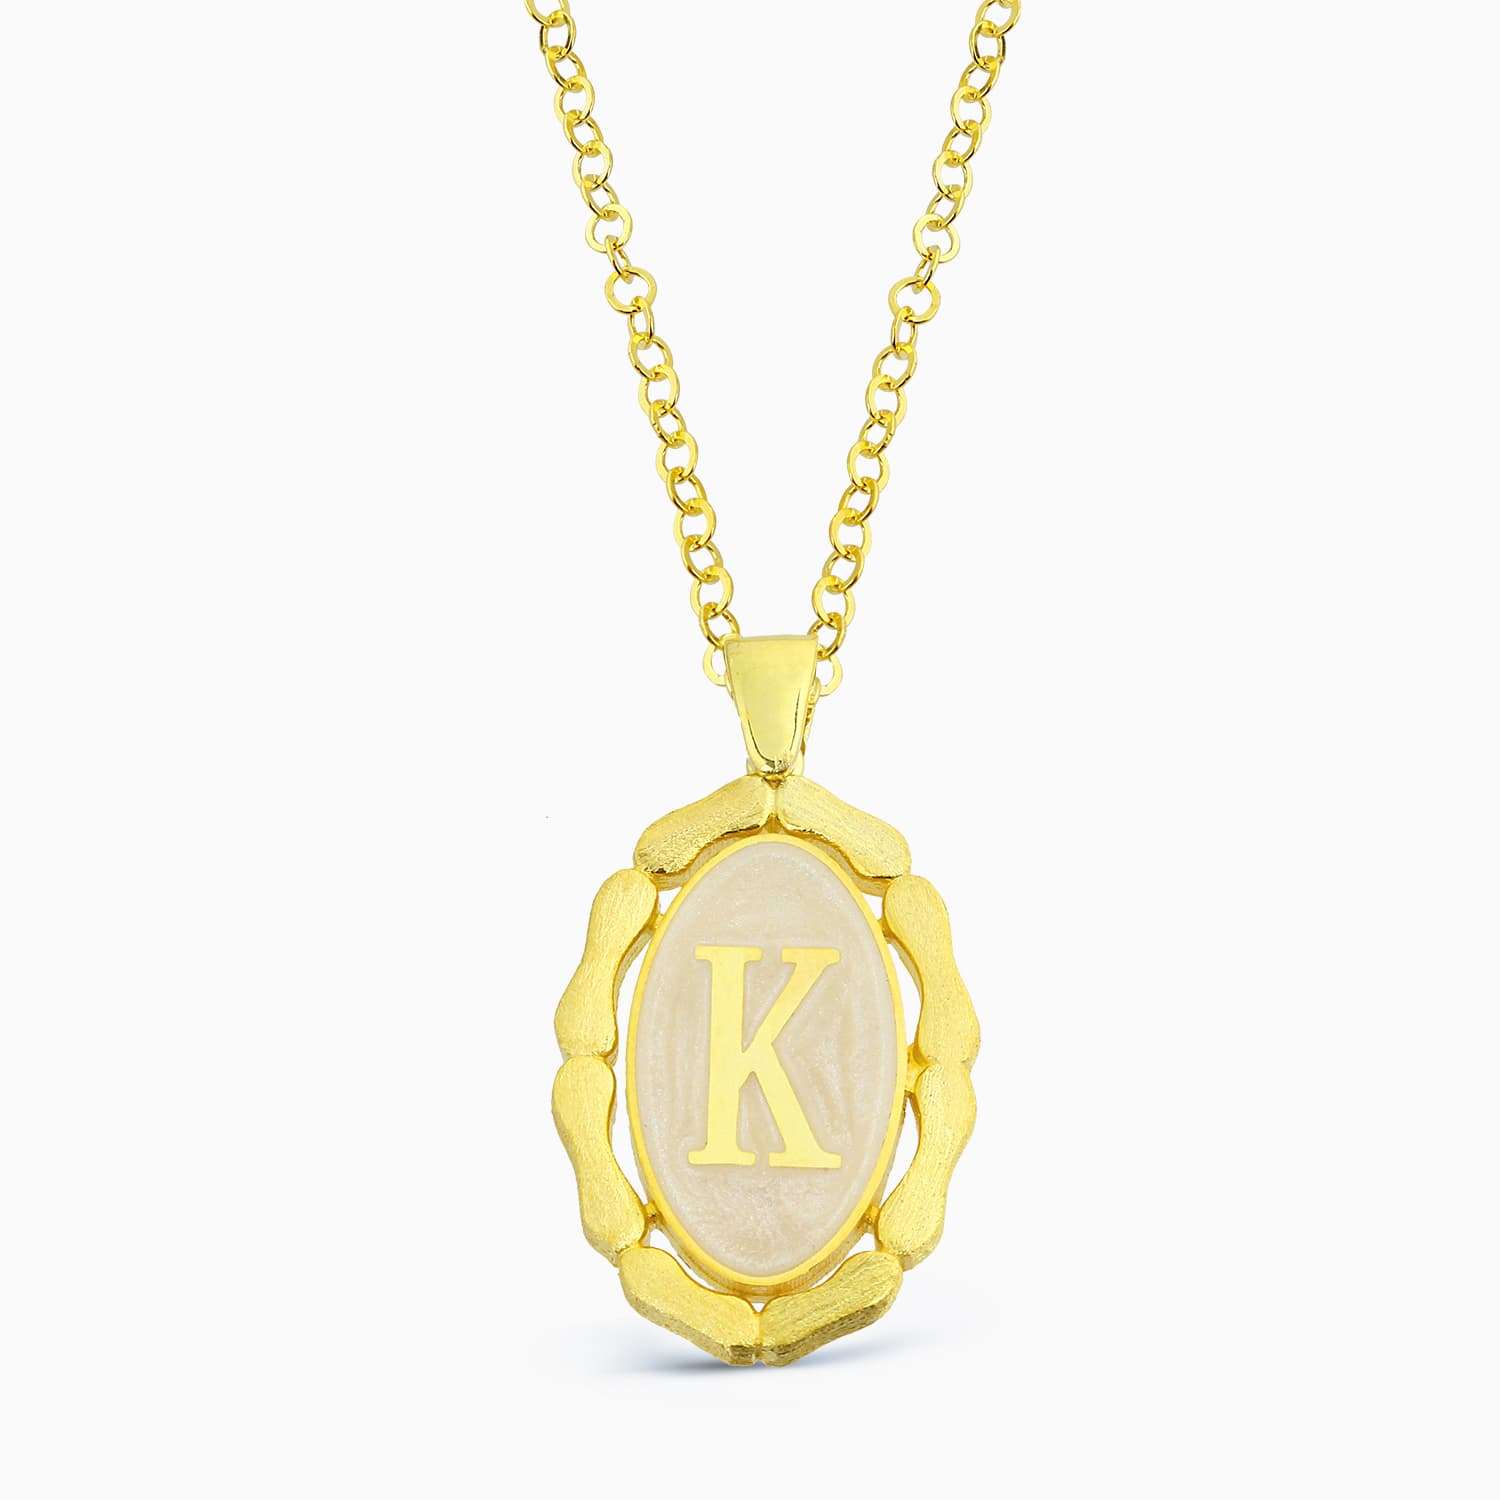 LETTER K MINNED NECKLACE